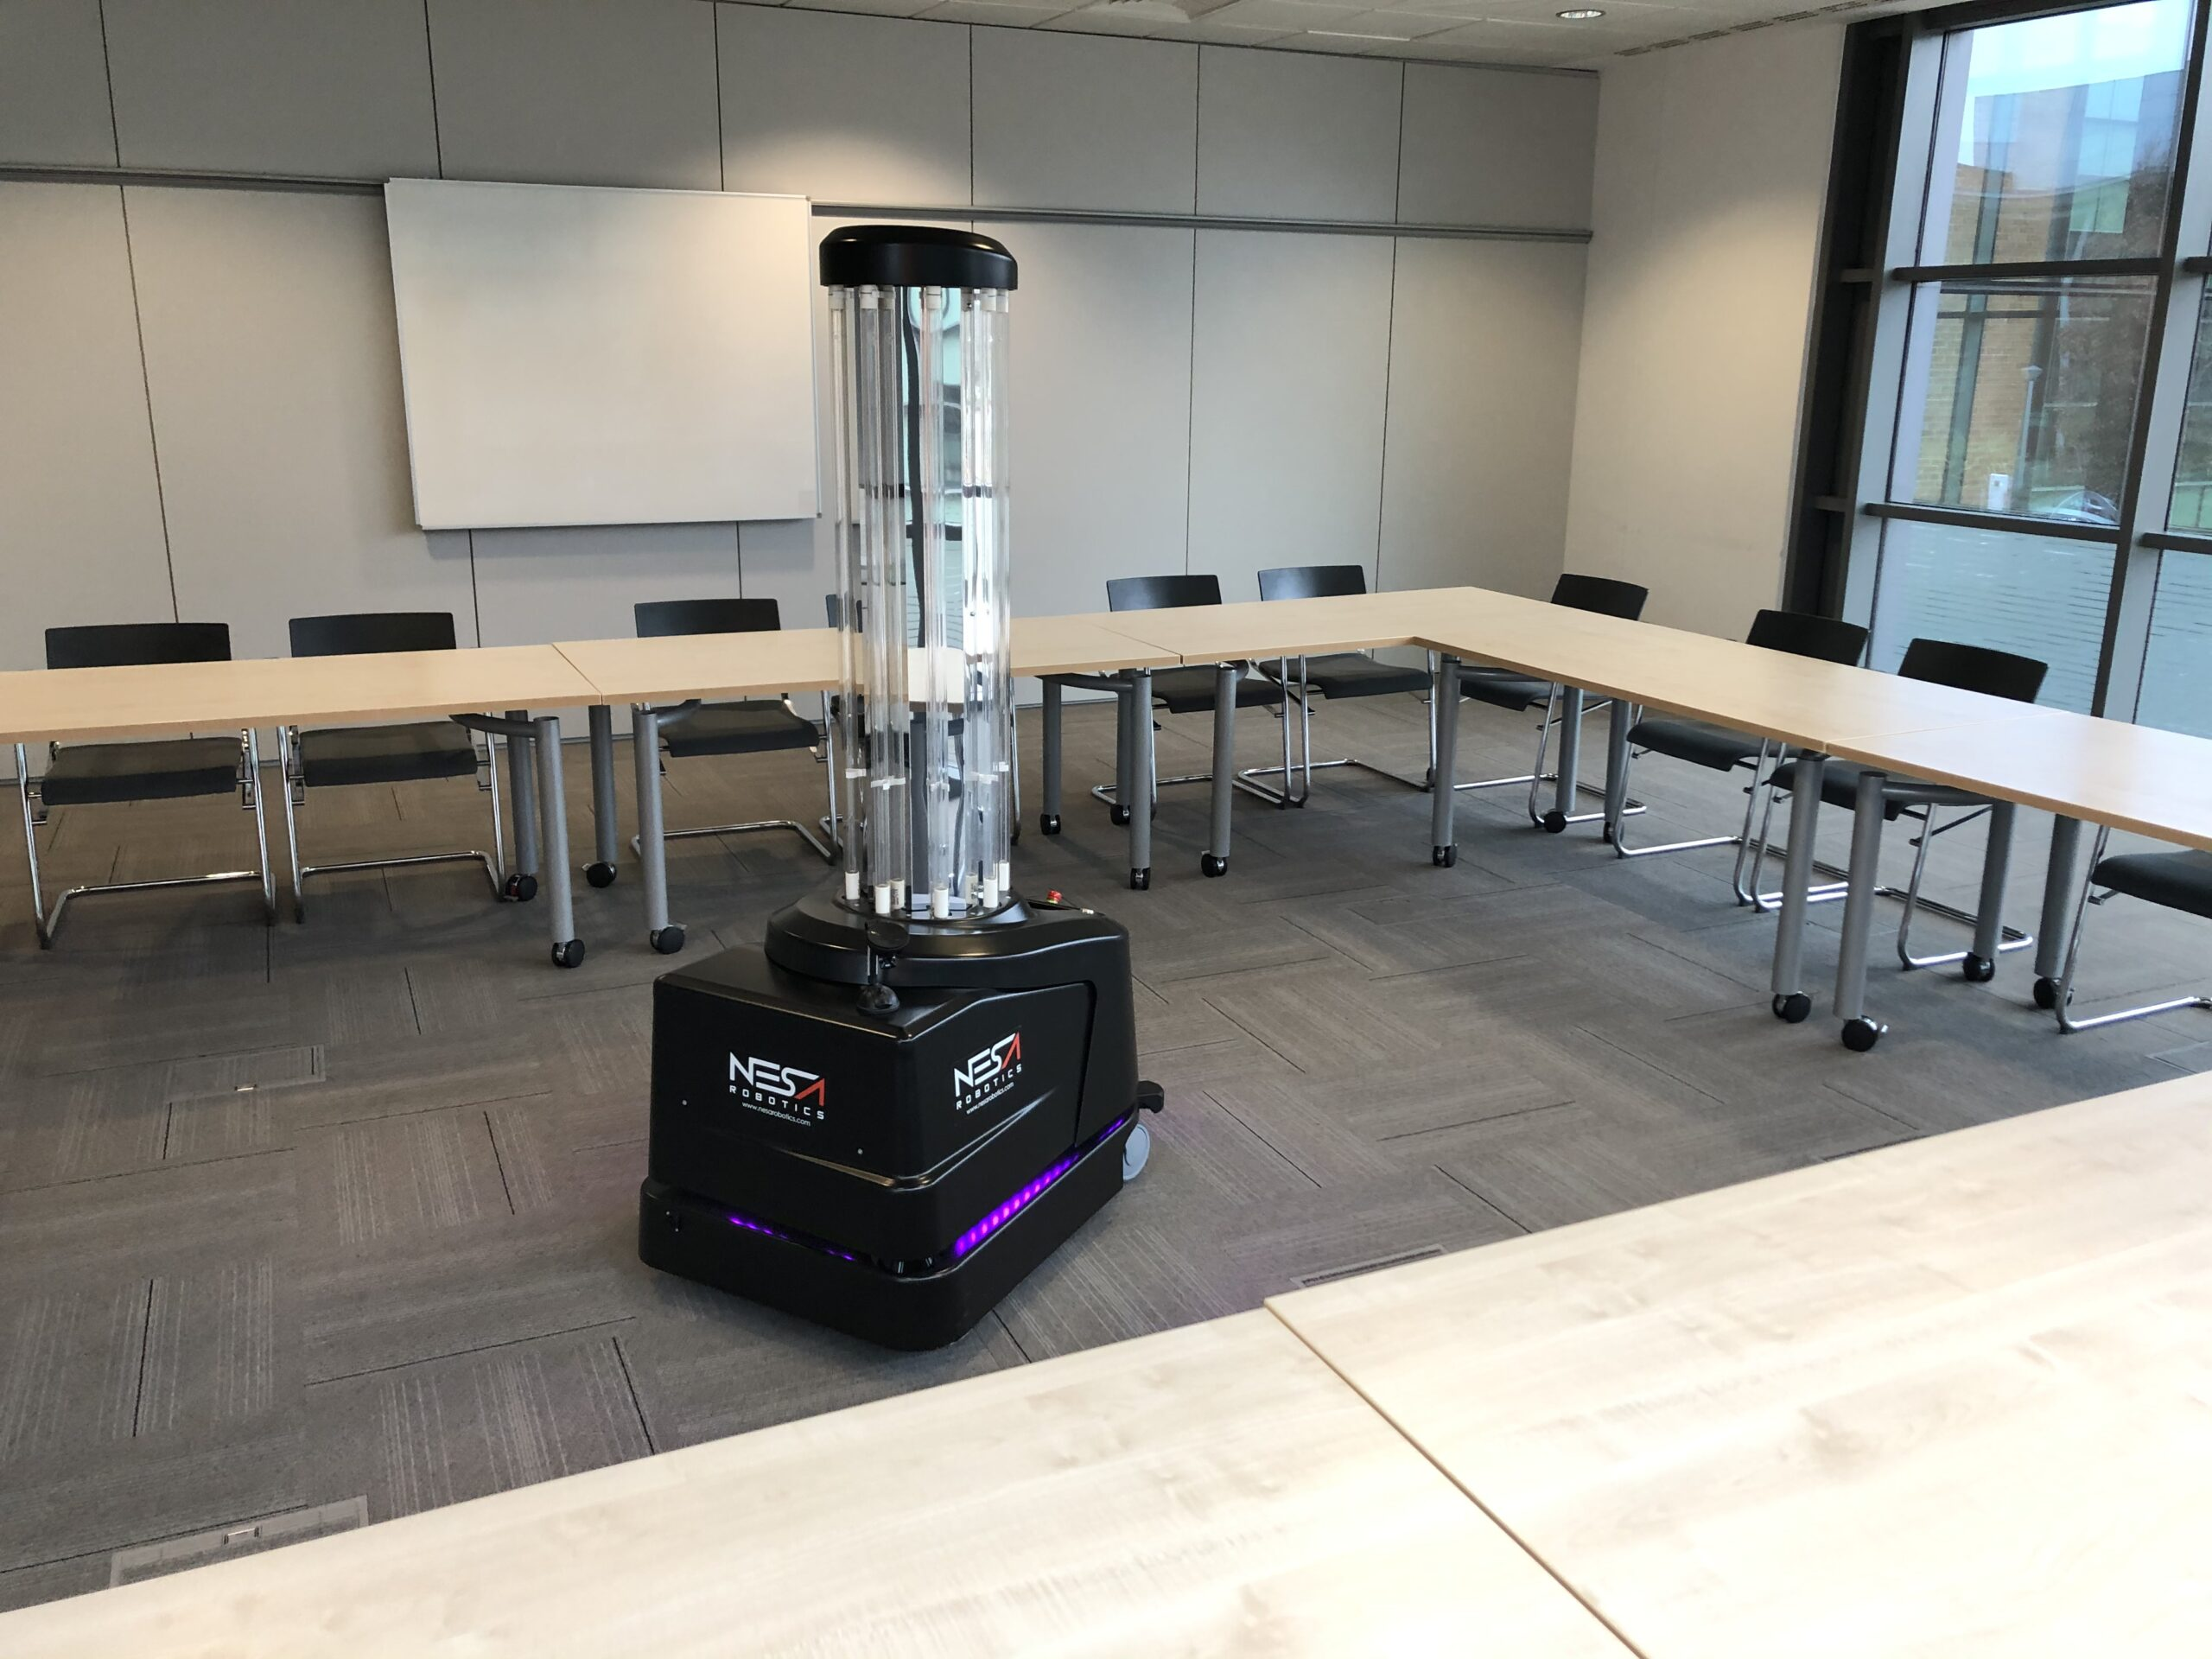 UVD Robot disinfecting a conference room at Siemens in front of their Facilities Management team